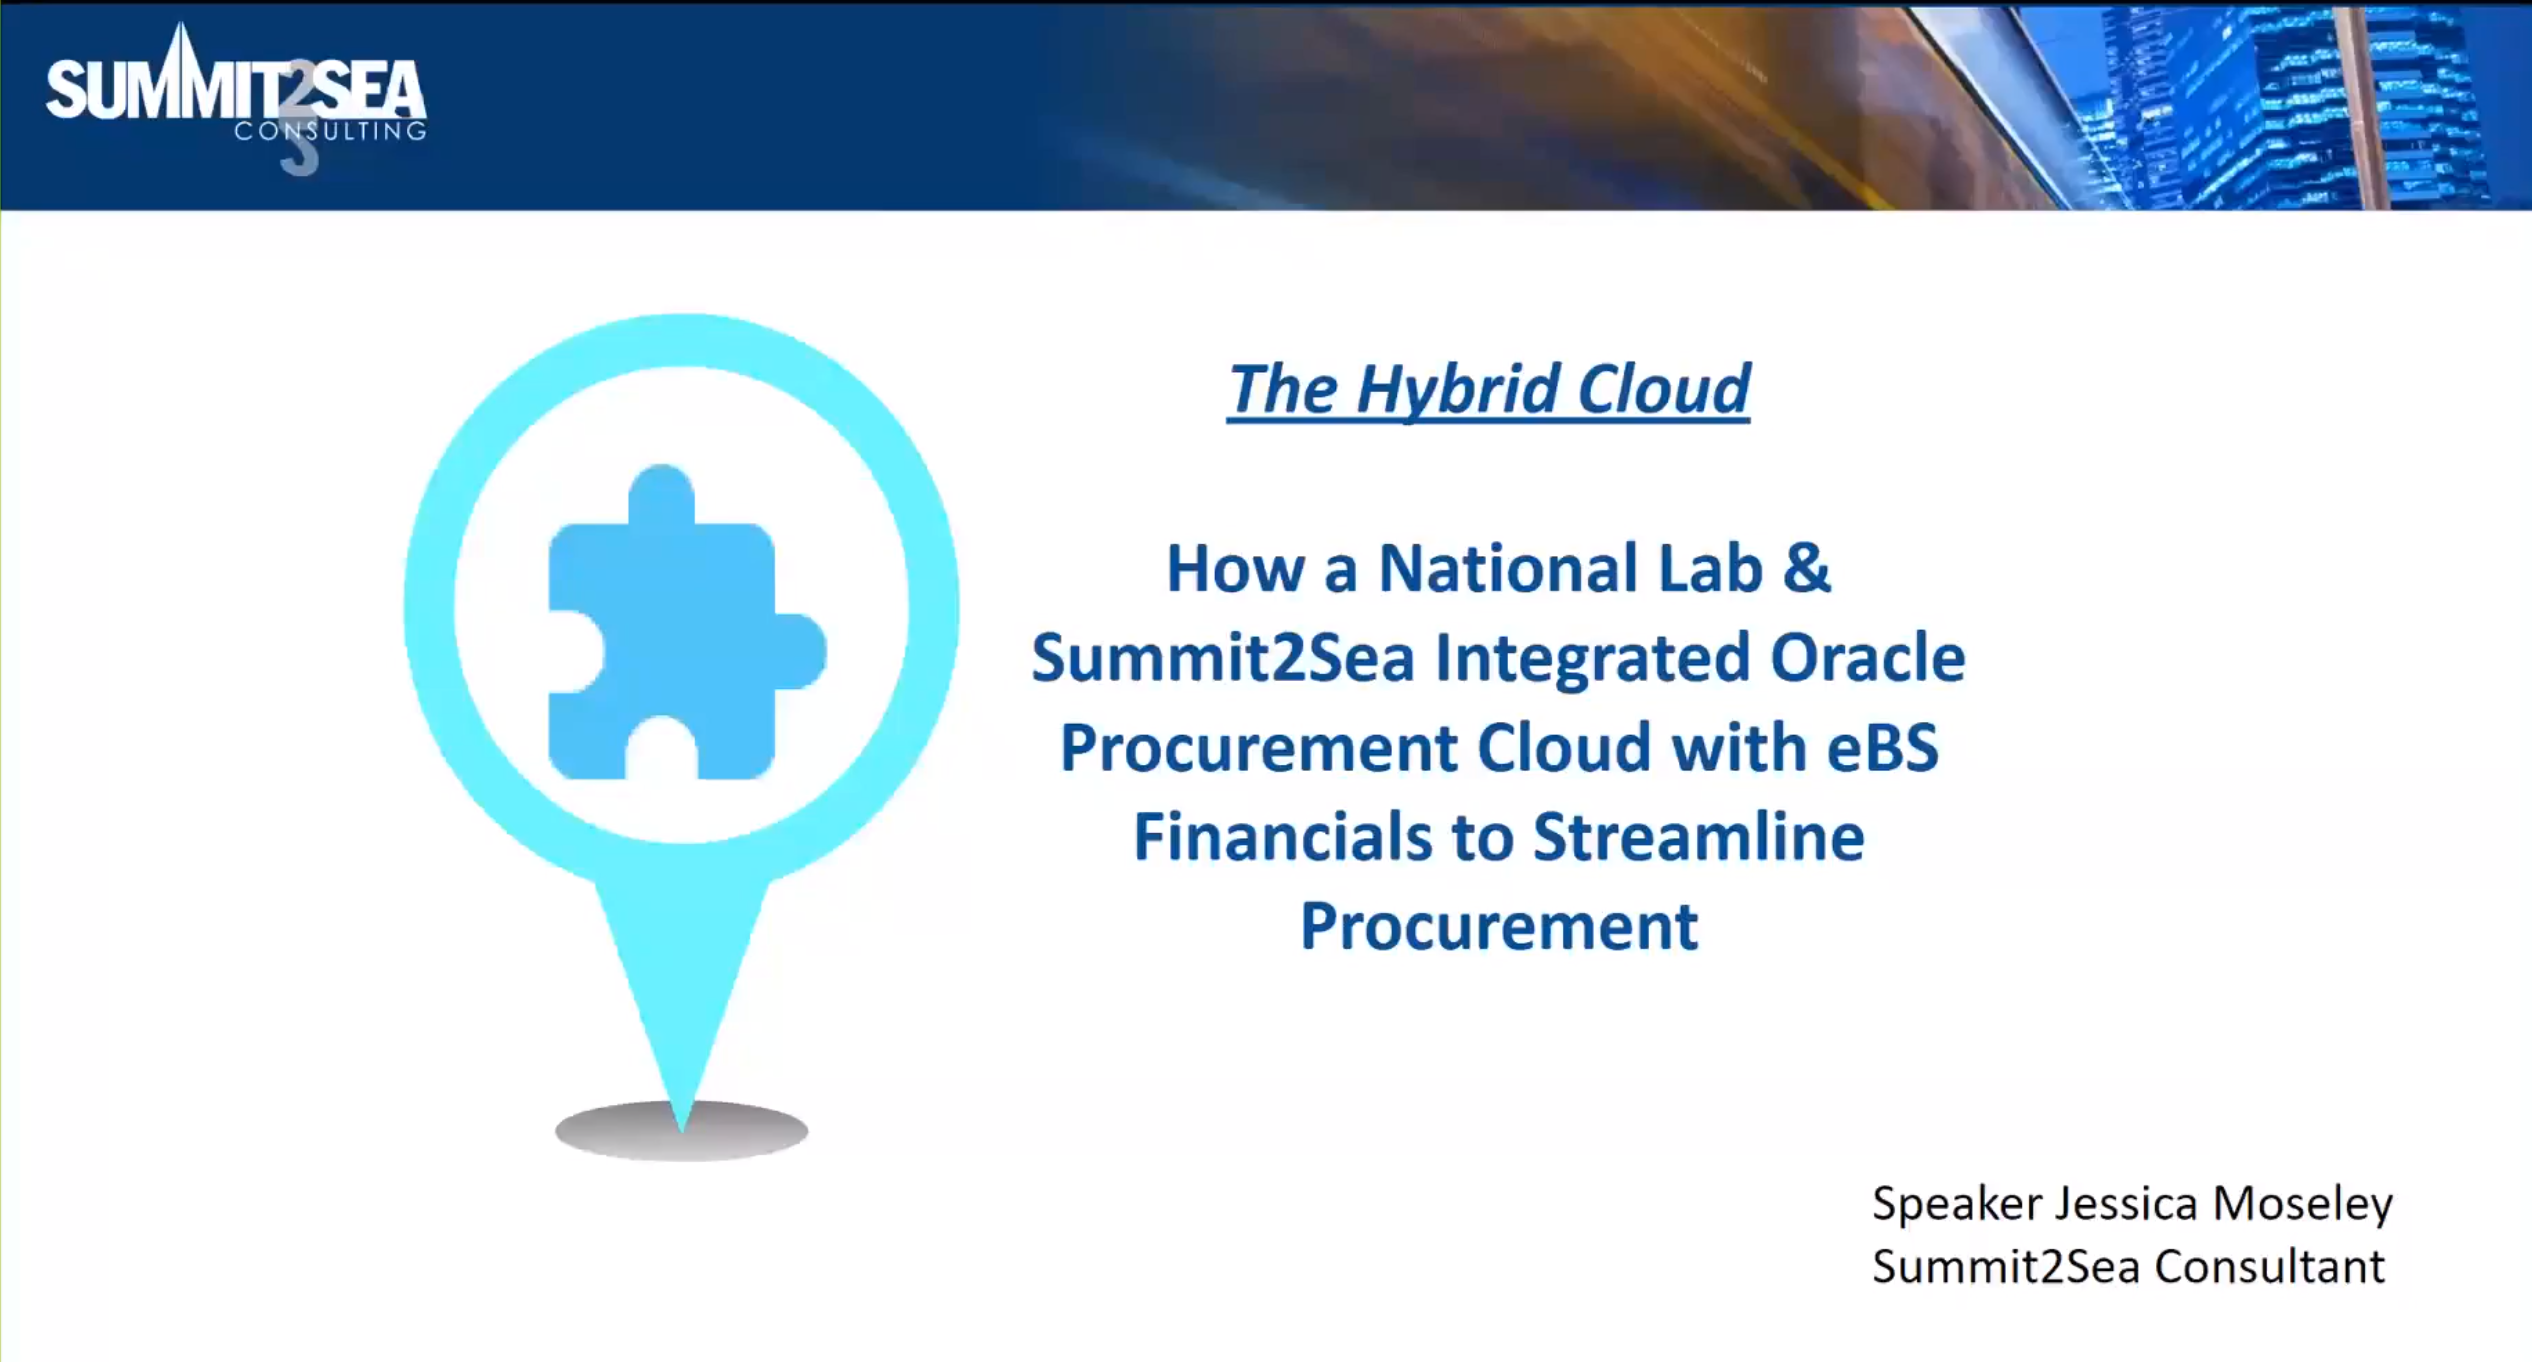 Hybrid Cloud, Oracle Procurement, Financial Consulting, ERP